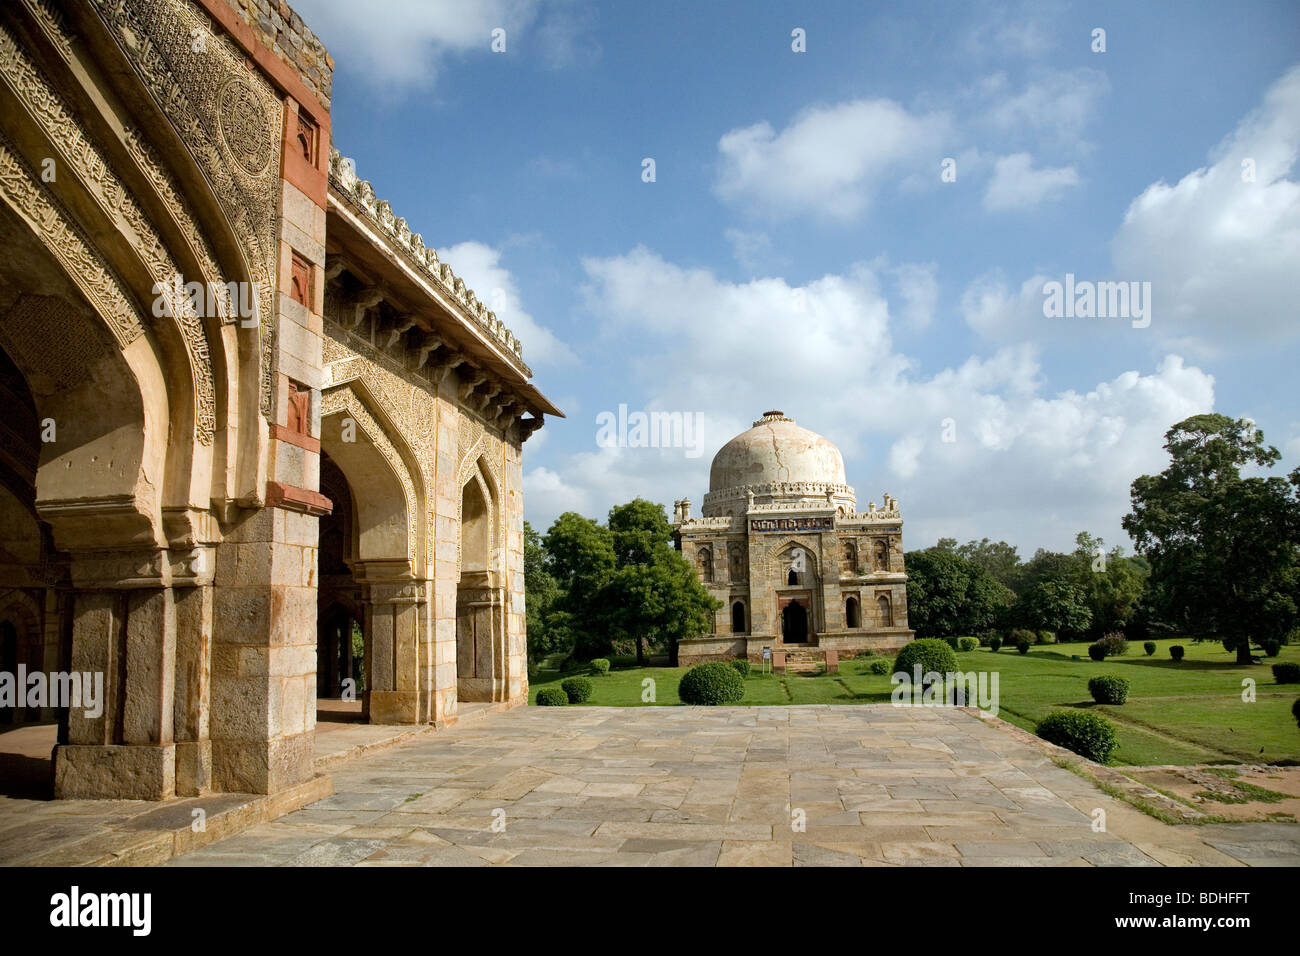 Sheesh gumbad viewed from the mosque adjacent to Bara gumbad, Lodi garden, New Delhi, India. - Stock Image